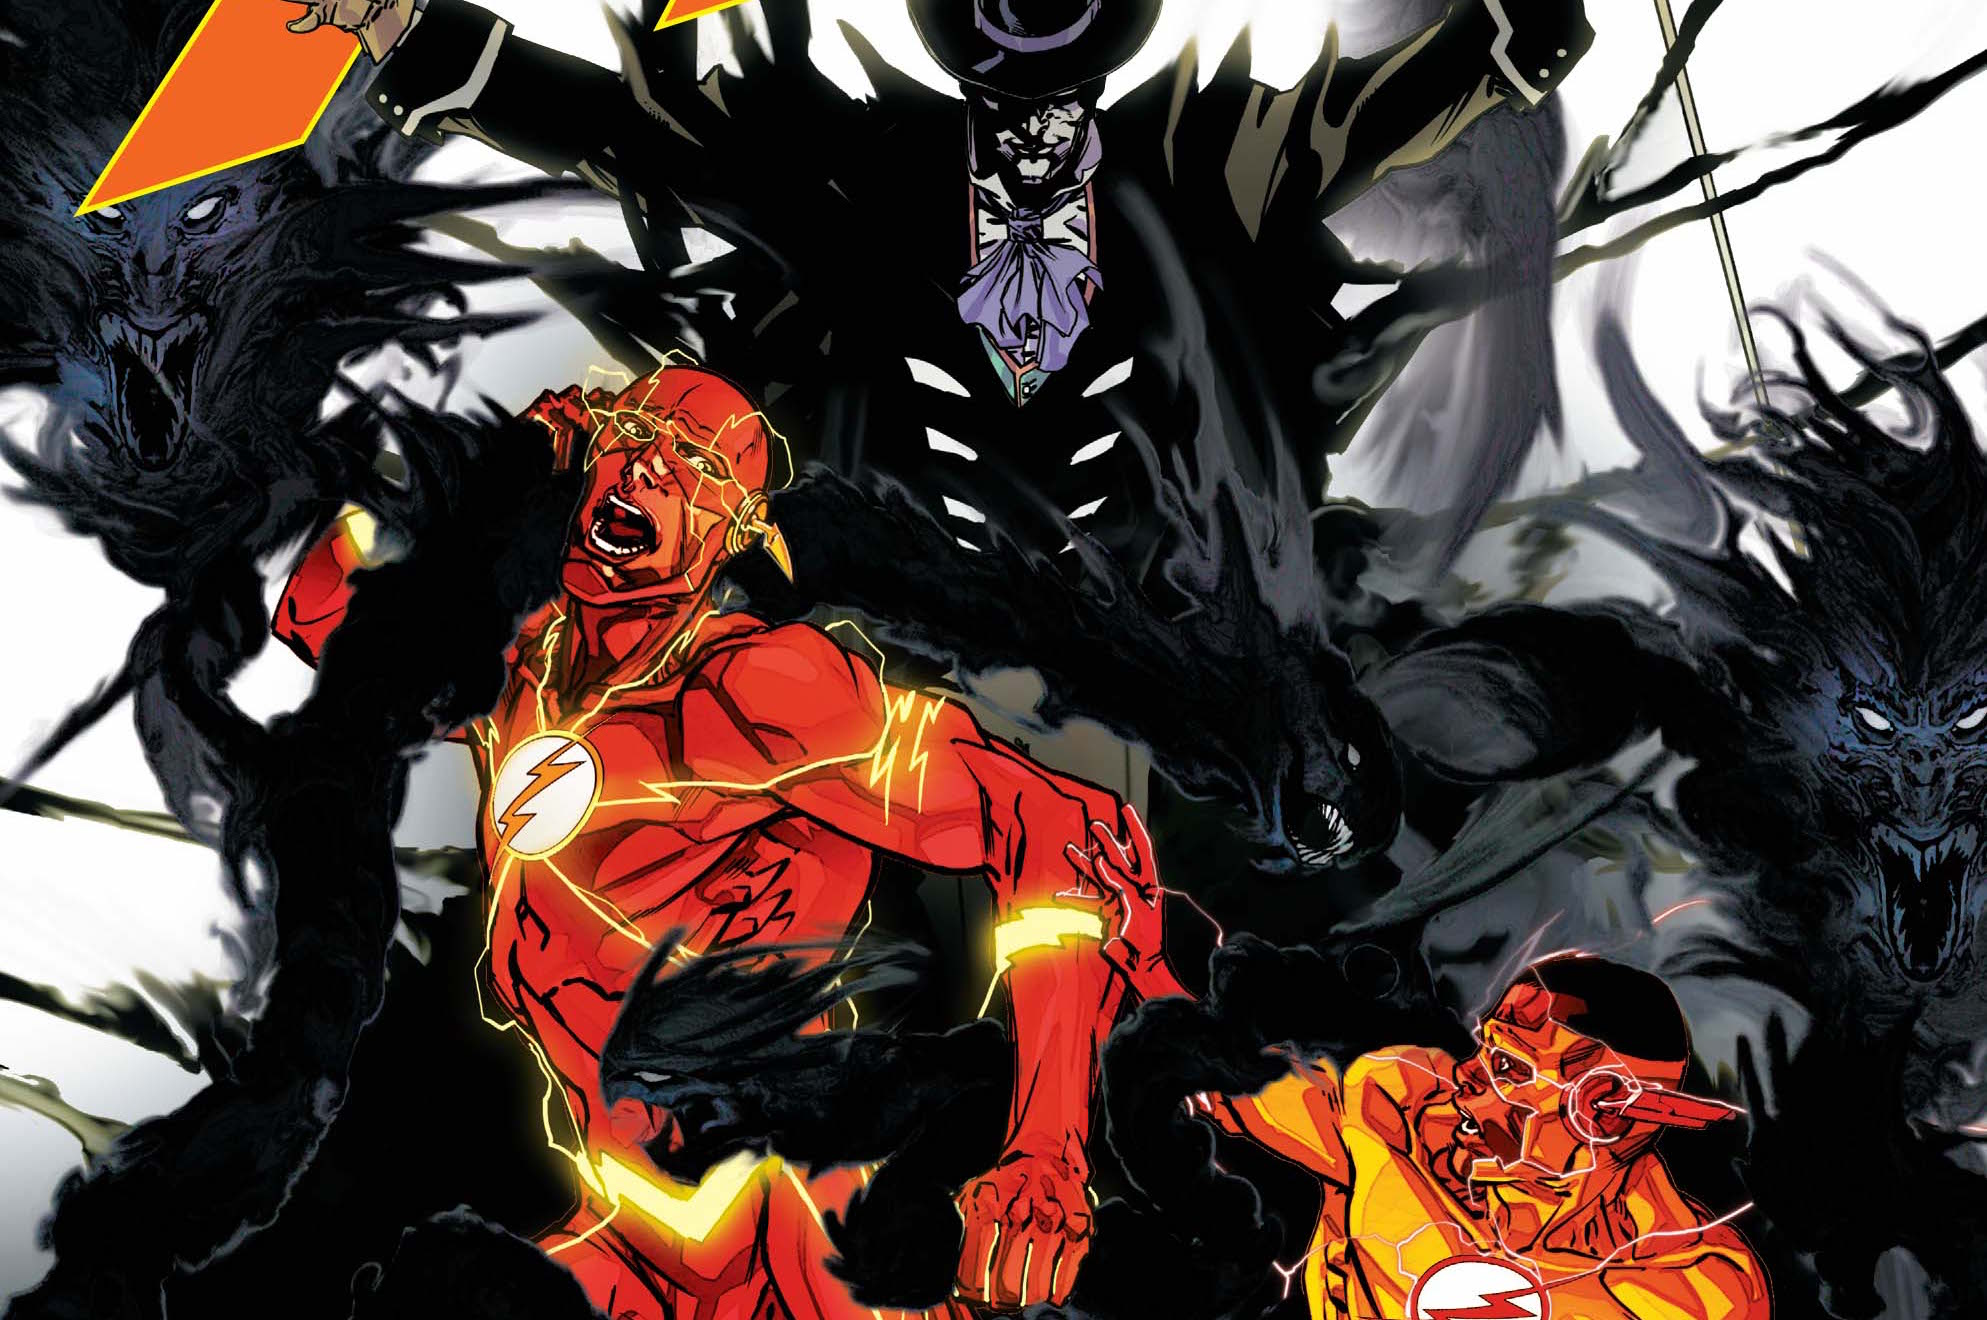 [EXCLUSIVE] DC Preview: Flash #10